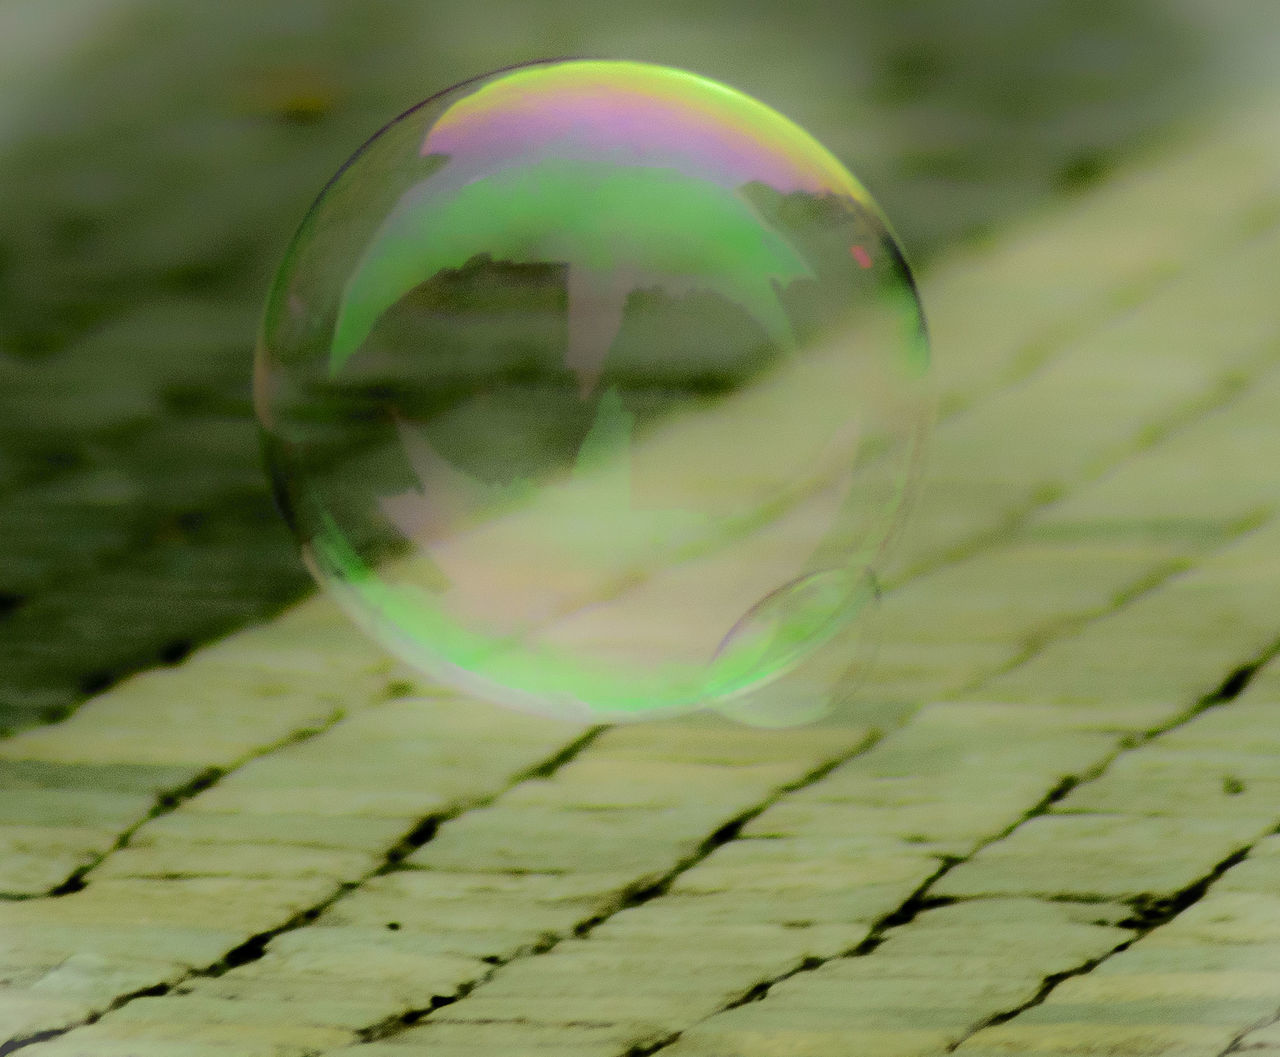 bubble, fragility, bubble wand, no people, reflection, close-up, crystal ball, refraction, spectrum, day, outdoors